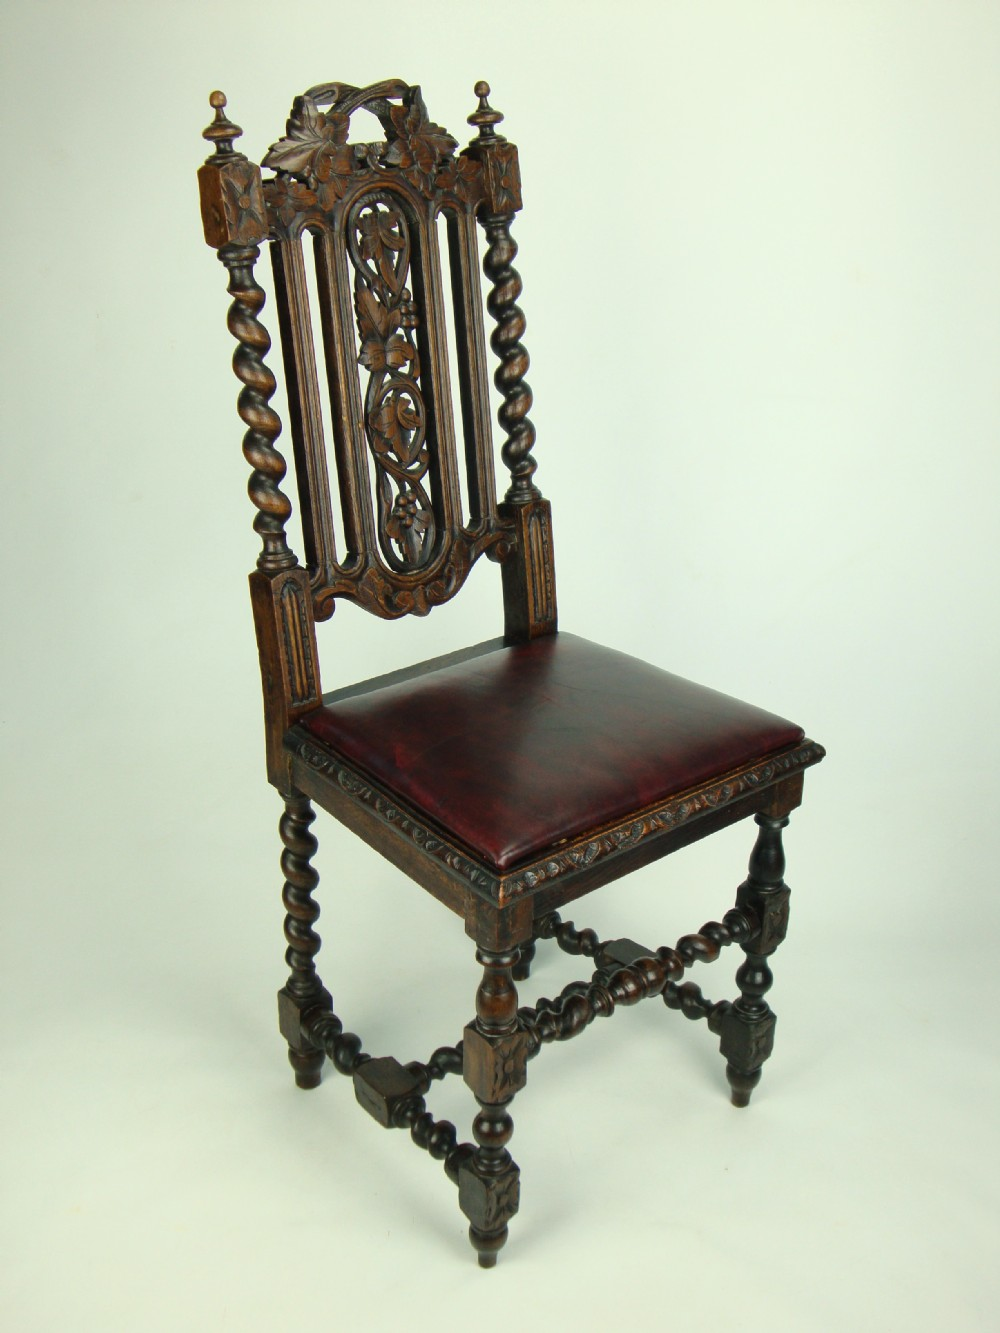 Genial Antique Victorian Gothic Oak Chair With Leather Seat | 249814 |  Sellingantiques.co.uk